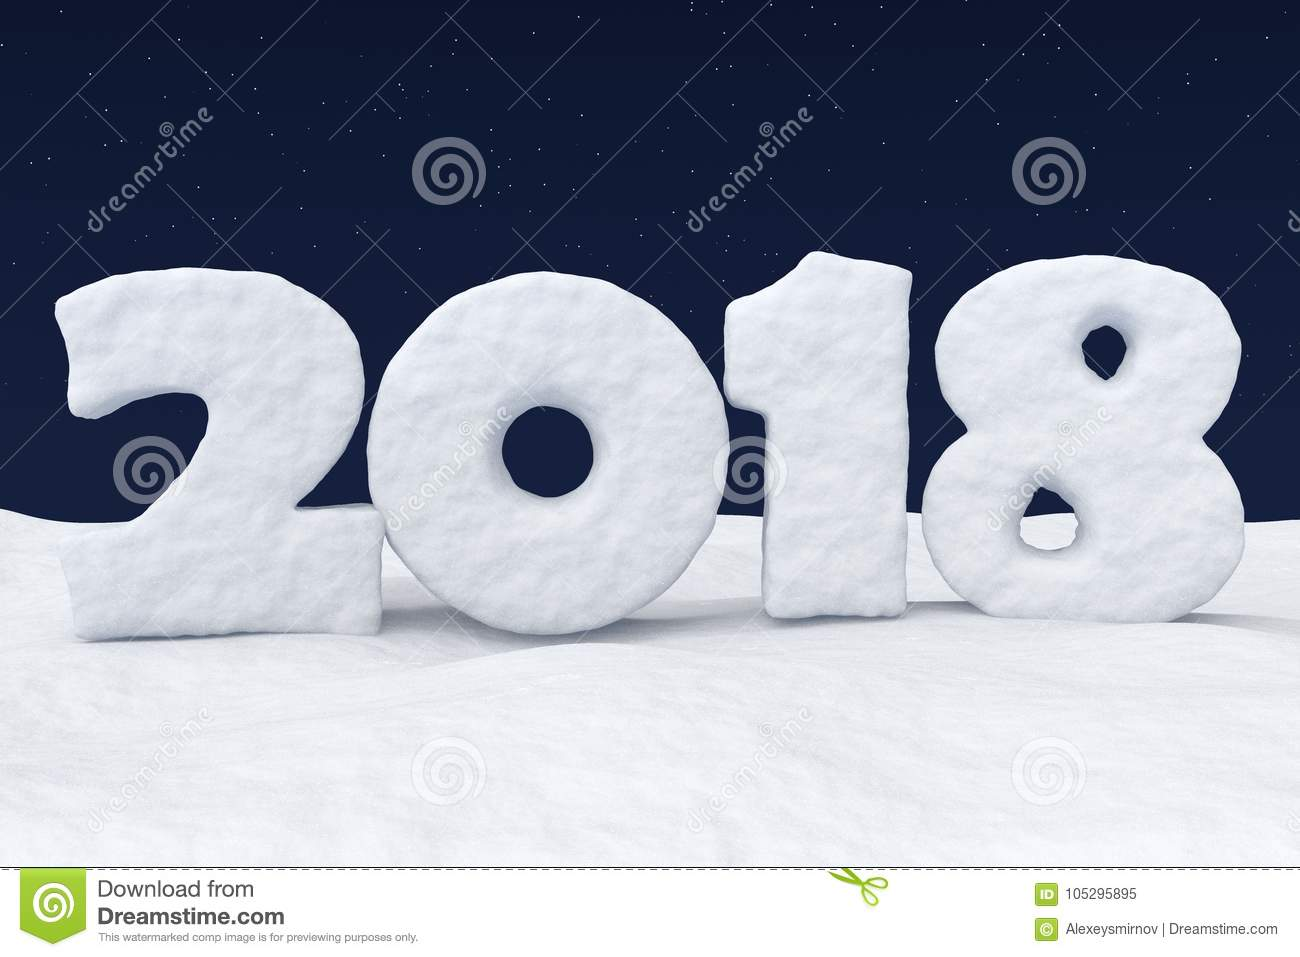 2018 New Year Snow Text On Snow Under Night Sky With Stars Stock